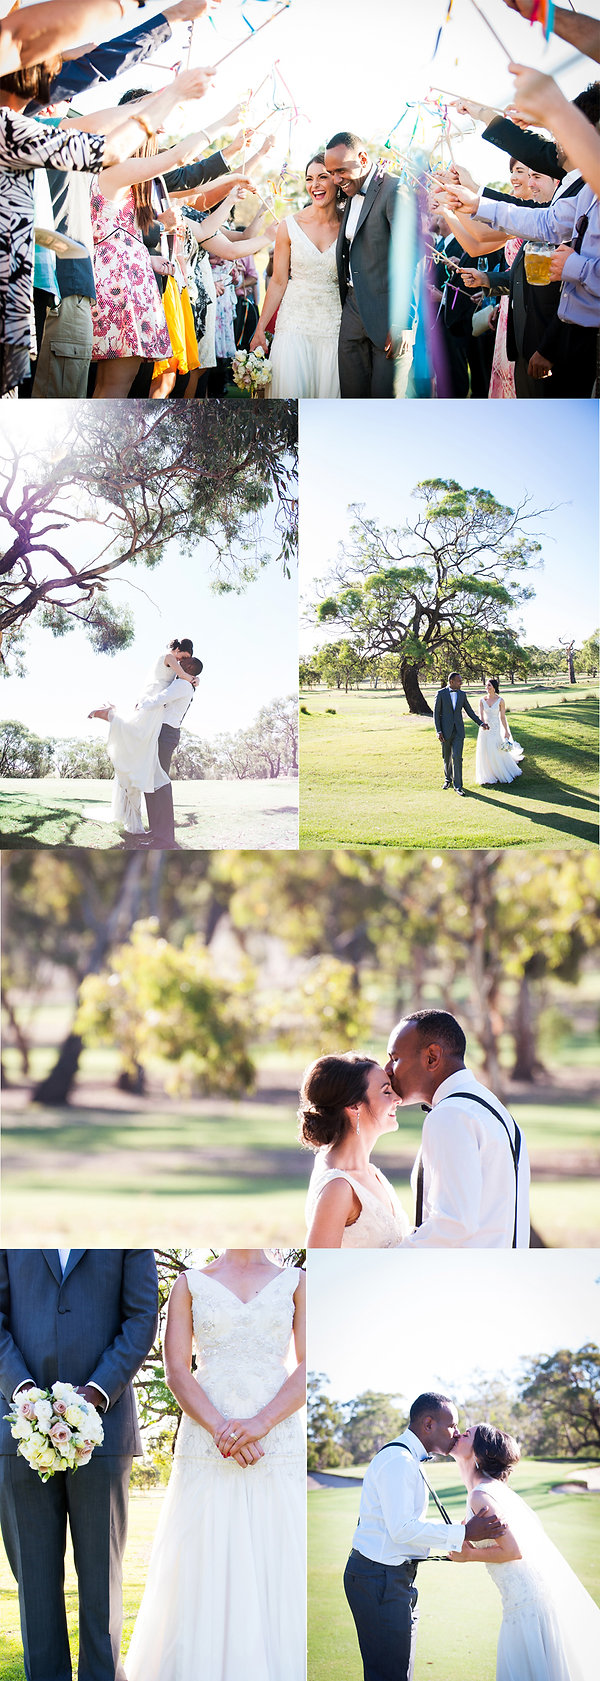 Adelaide photographer at Adelaide, South Australia, Adelaide wedding photography, wedding photographer, wedding photography, Adelaide Hills Wedding , Barrossa Valley wedding